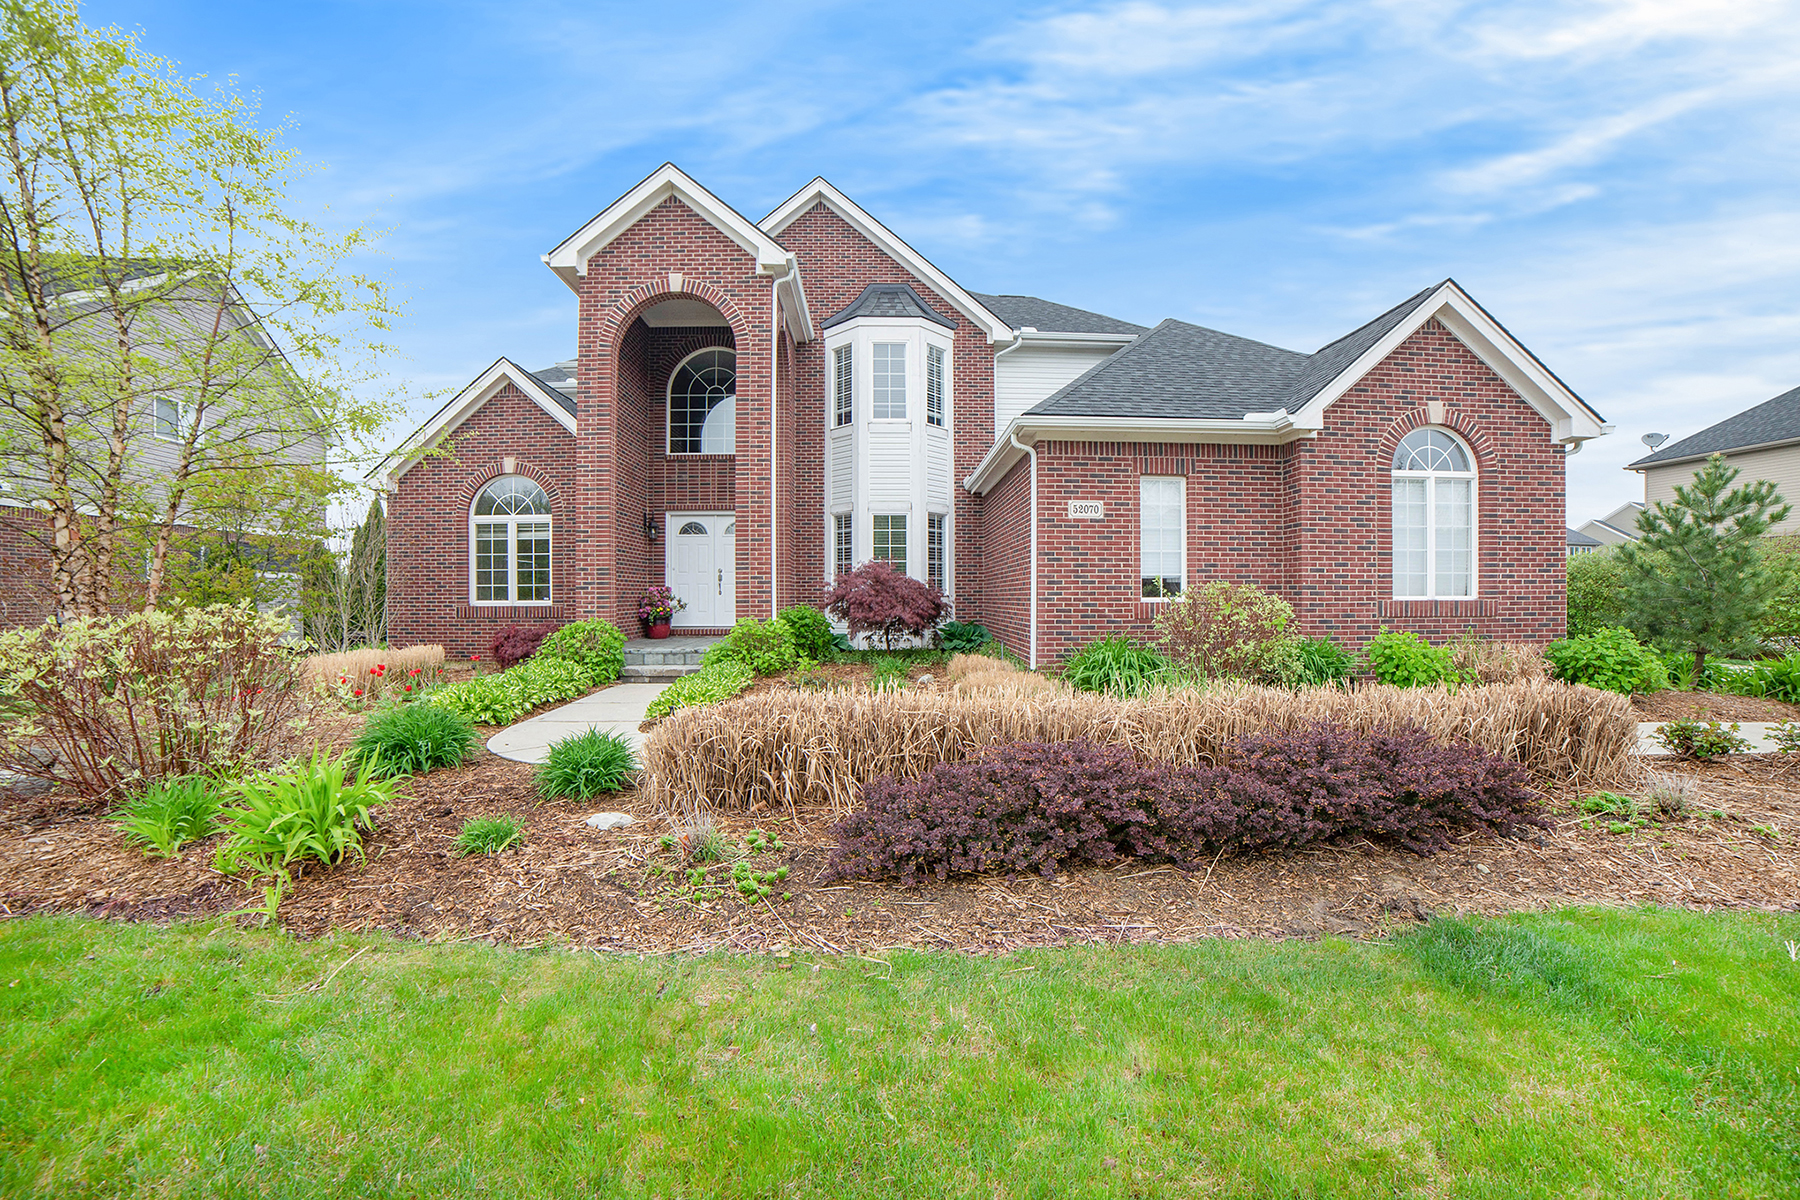 Single Family Homes for Sale at Lyon Township 52070 Copperwood Drive S South Lyon, Michigan 48178 United States